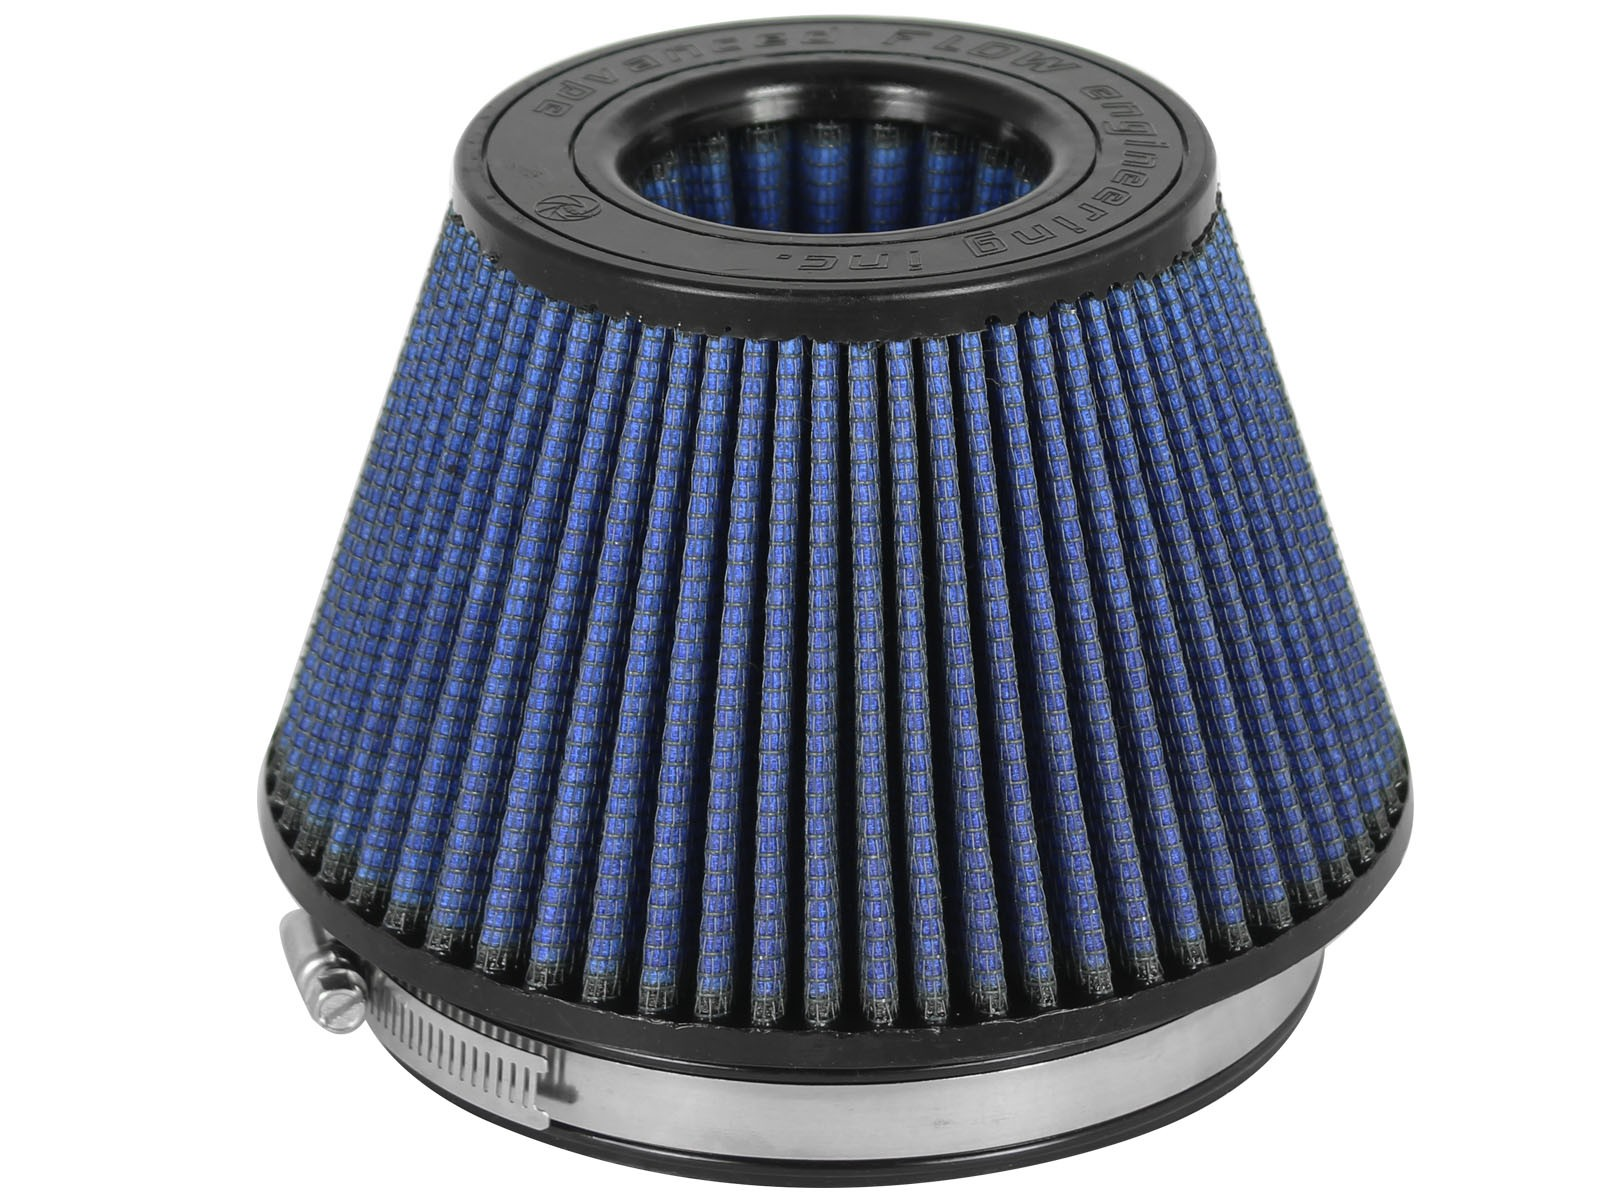 aFe POWER 24-91060 Magnum FLOW Pro 5R Air Filter